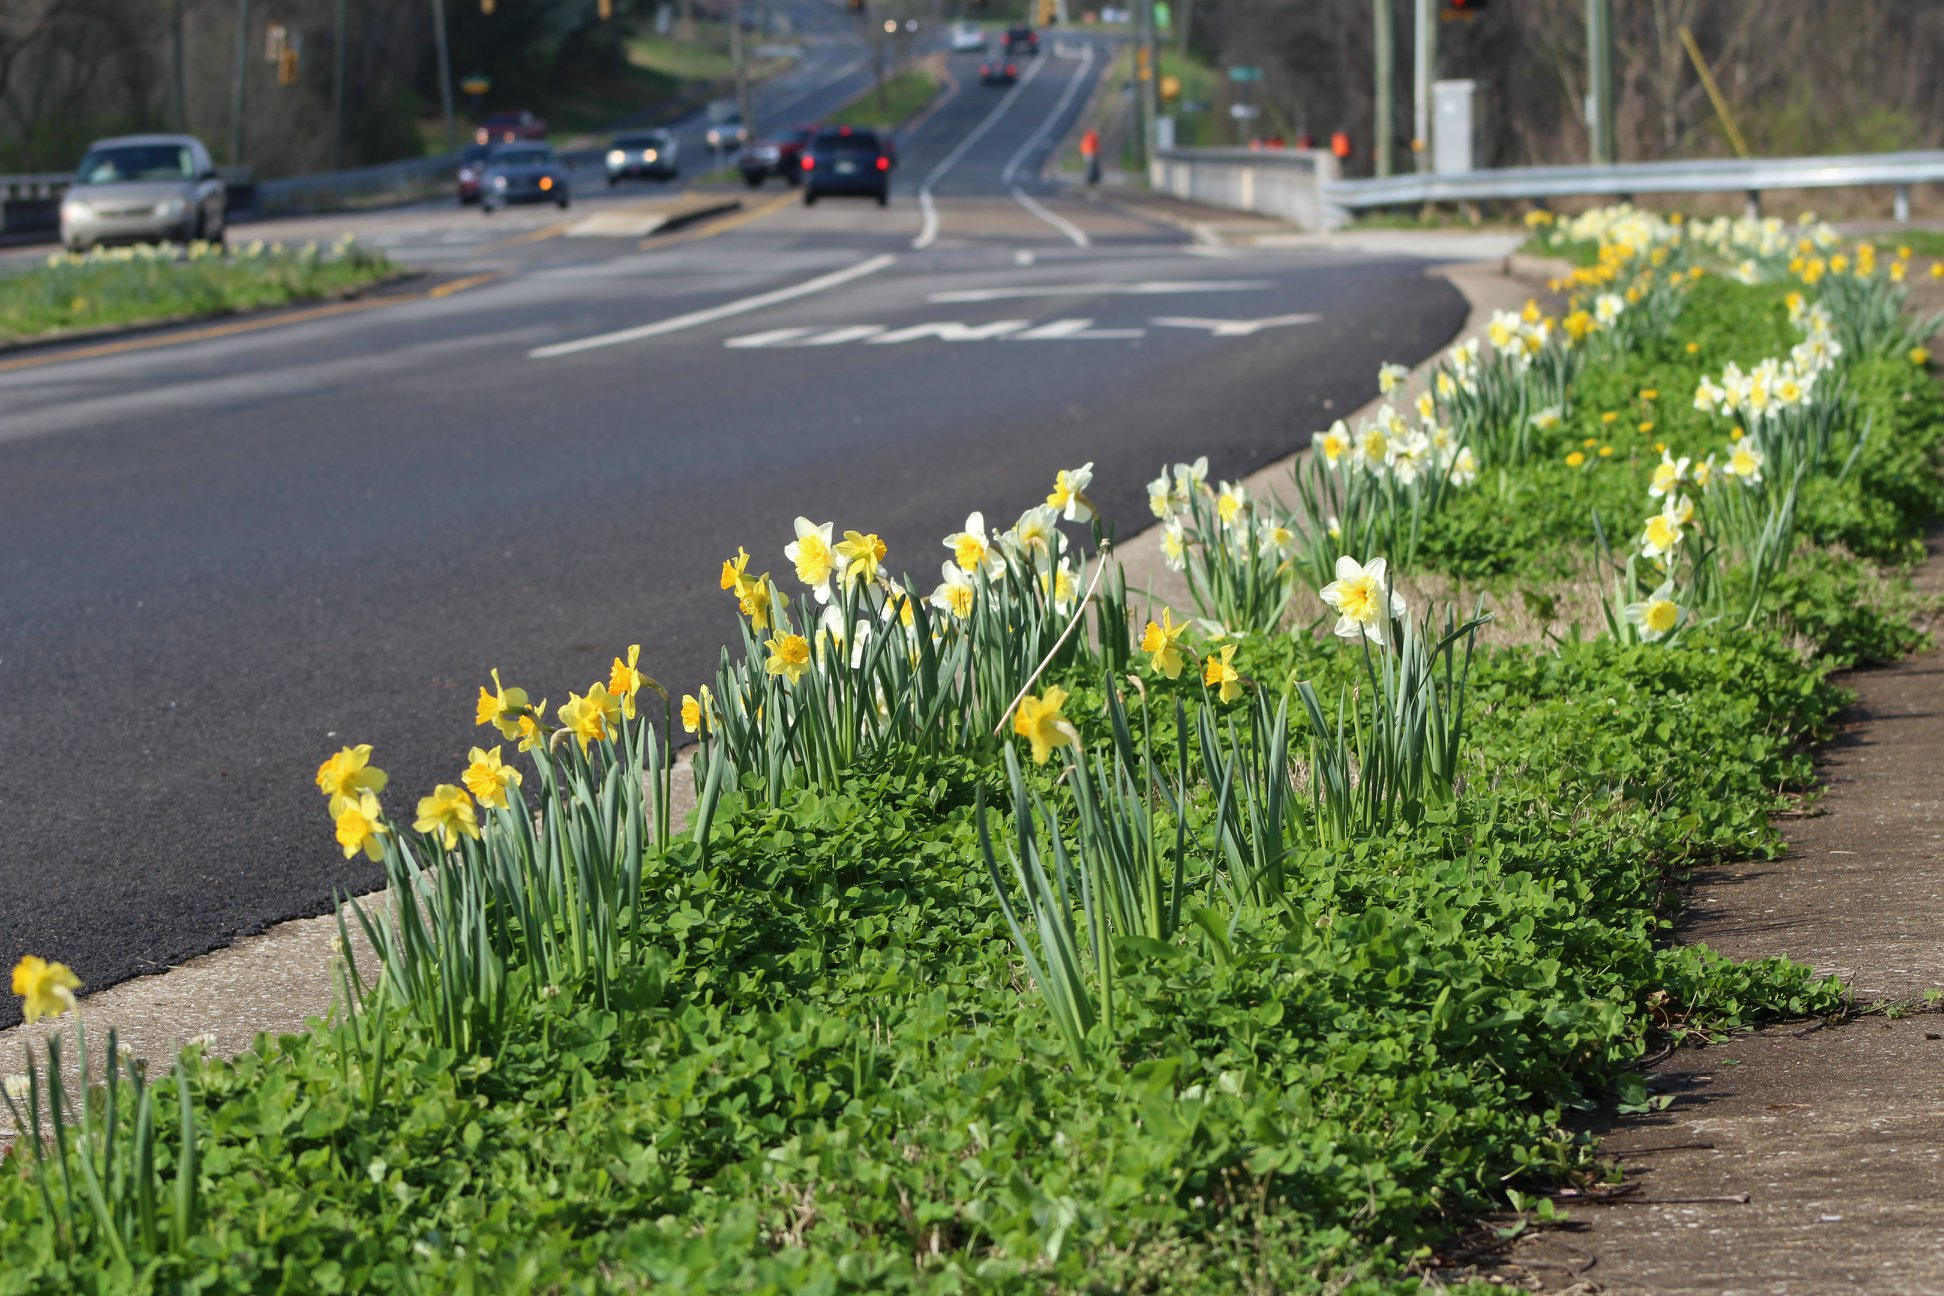 2016   2,000 daffodil bulbs planted along Sevierville Pike in South Knoxville.